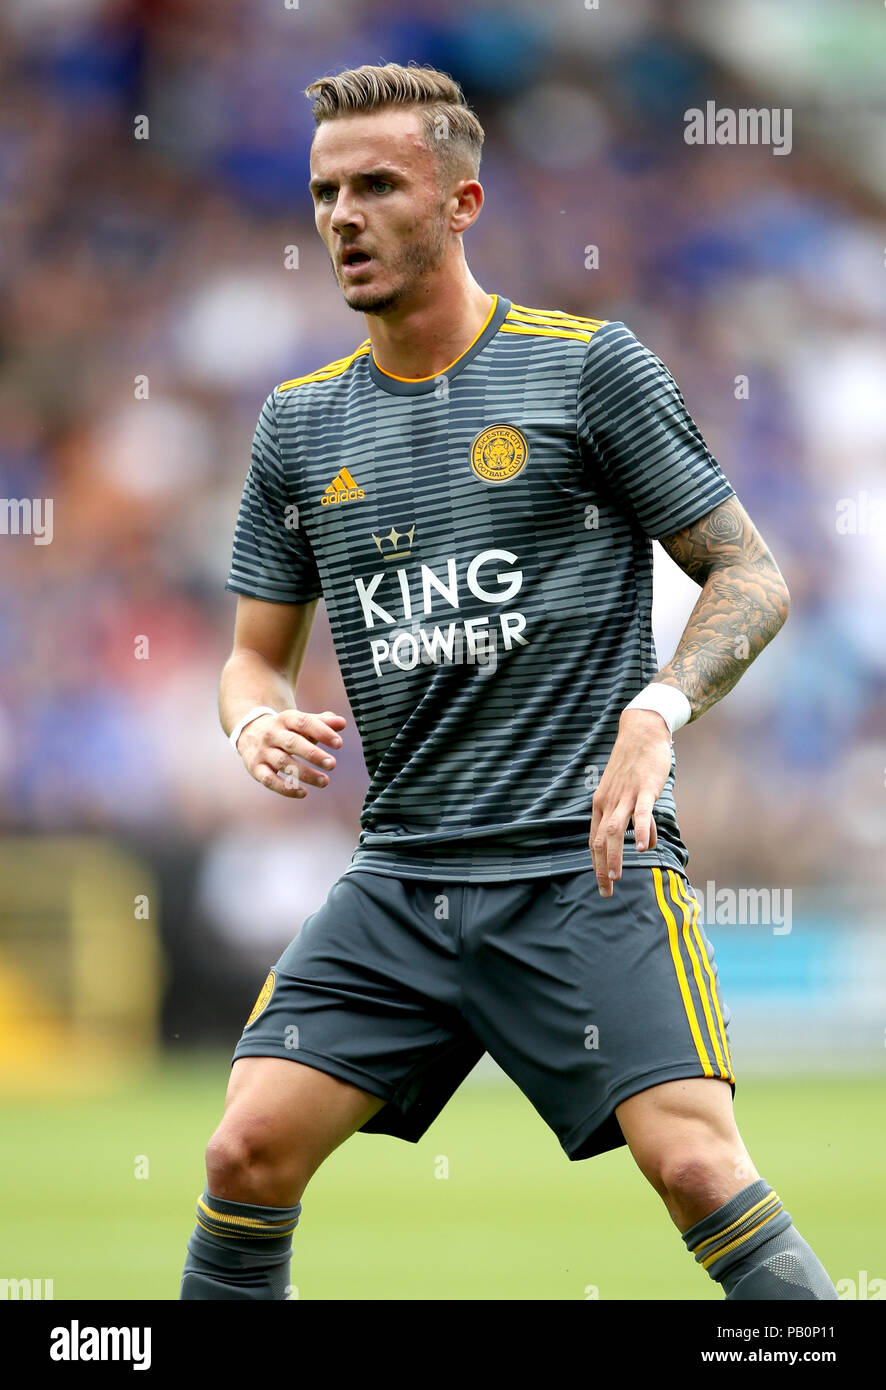 Leicester City's James Maddison during a pre season friendly match at Meadow Lane, Nottingham. - Stock Image